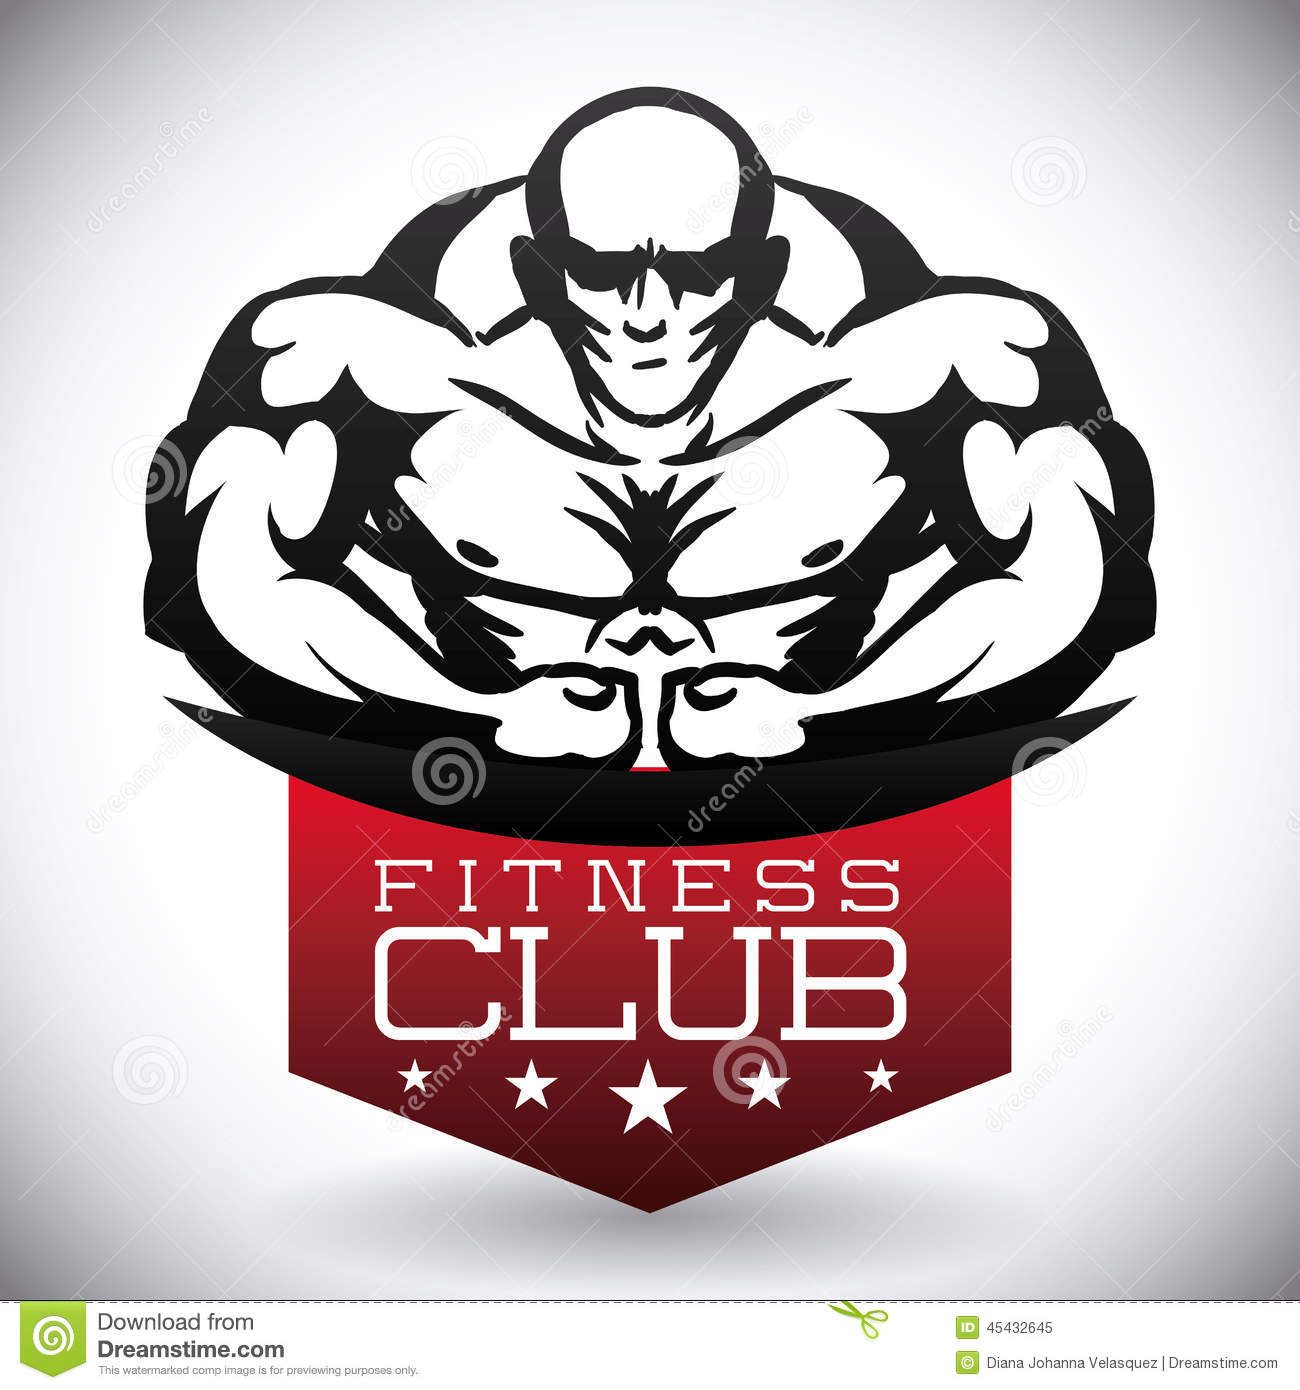 Bodybuilding design stock vector. Illustration of fitness - 45432645 for Bodybuilding Graphic Design  568zmd